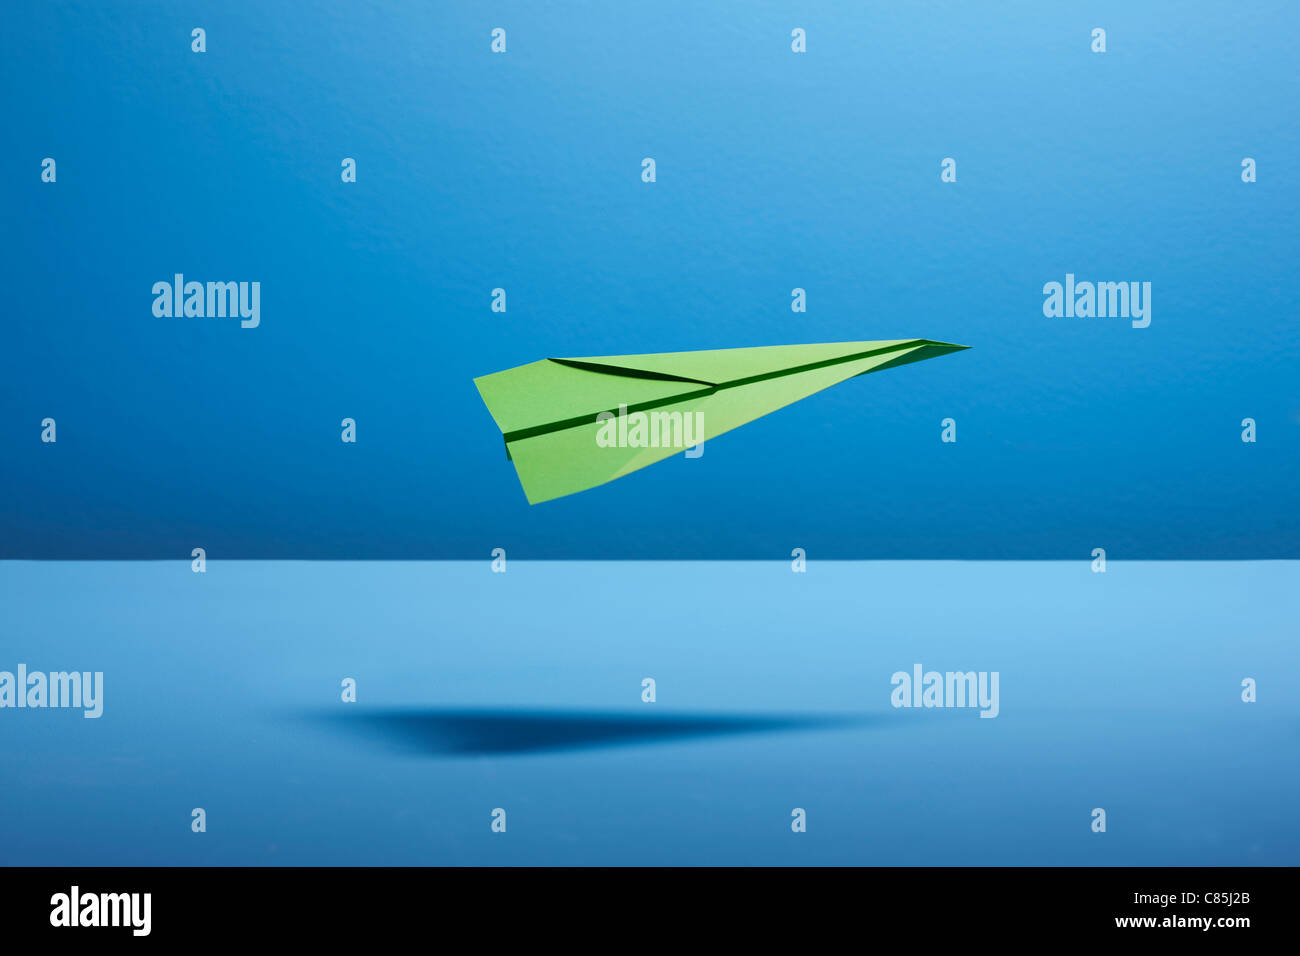 Paper aeroplane against gray background - Stock Image